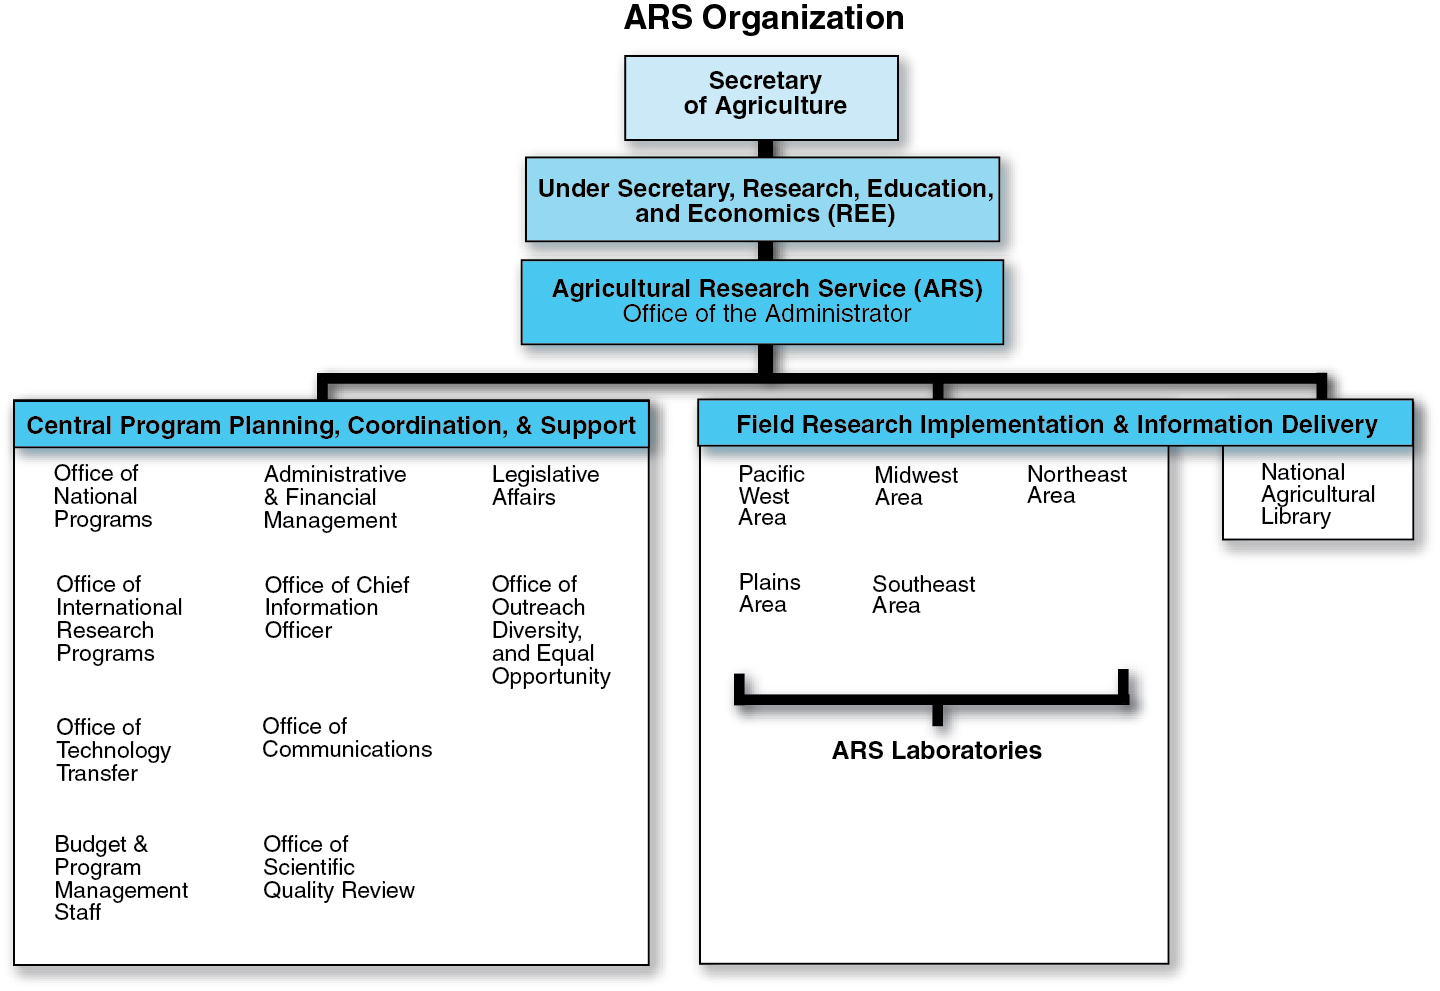 Find A Person Location Ars Organizational Chart